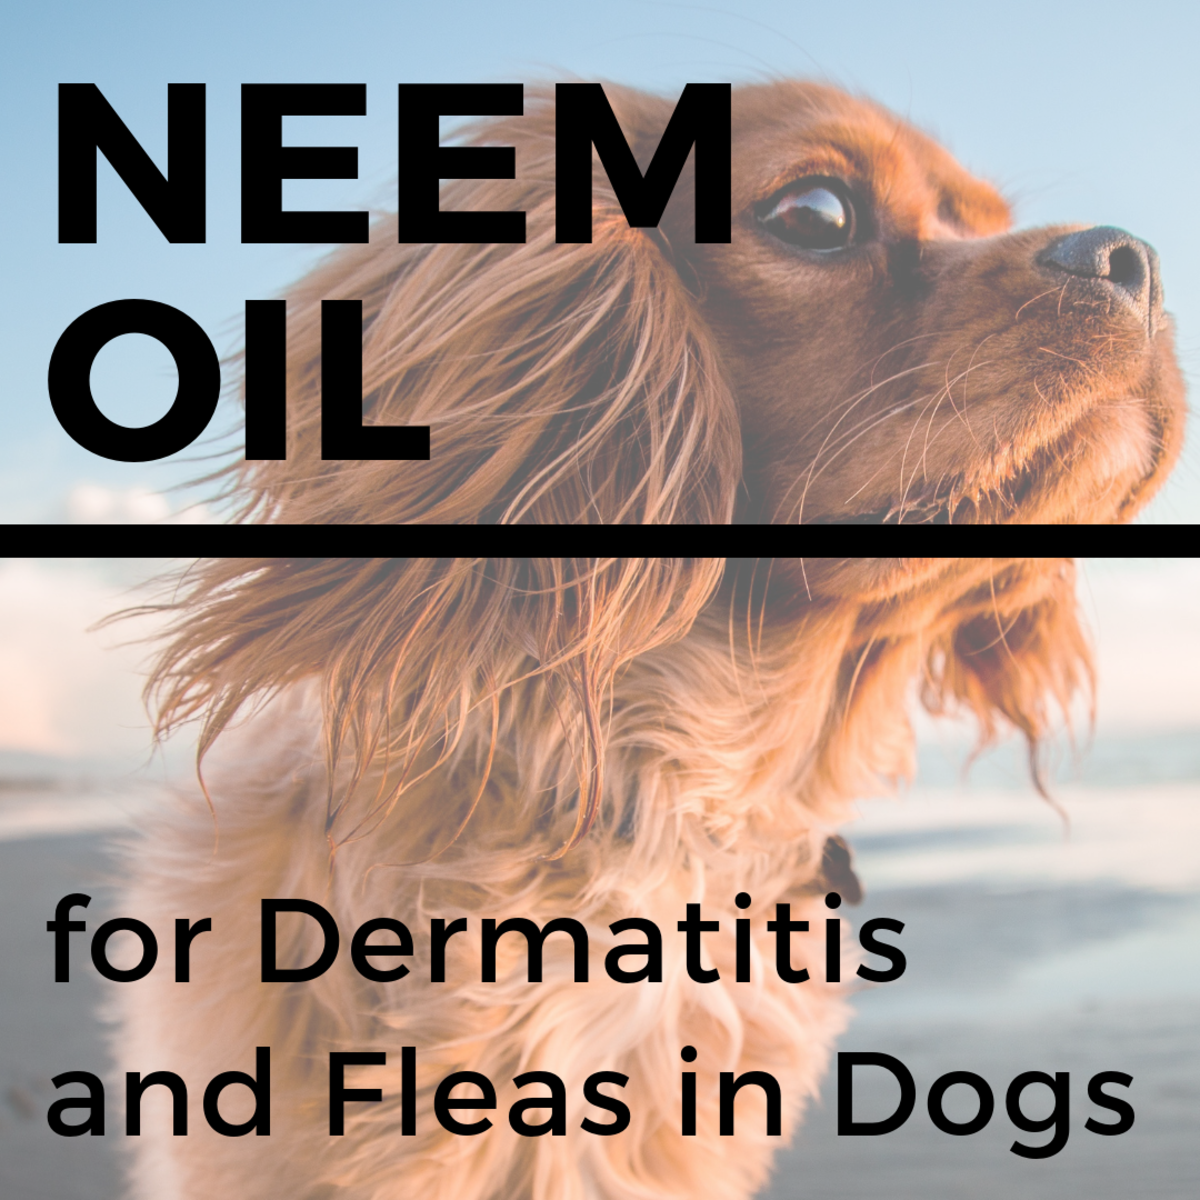 Neem Oil for Dogs Stops Itching, Heals Skin, and Repels